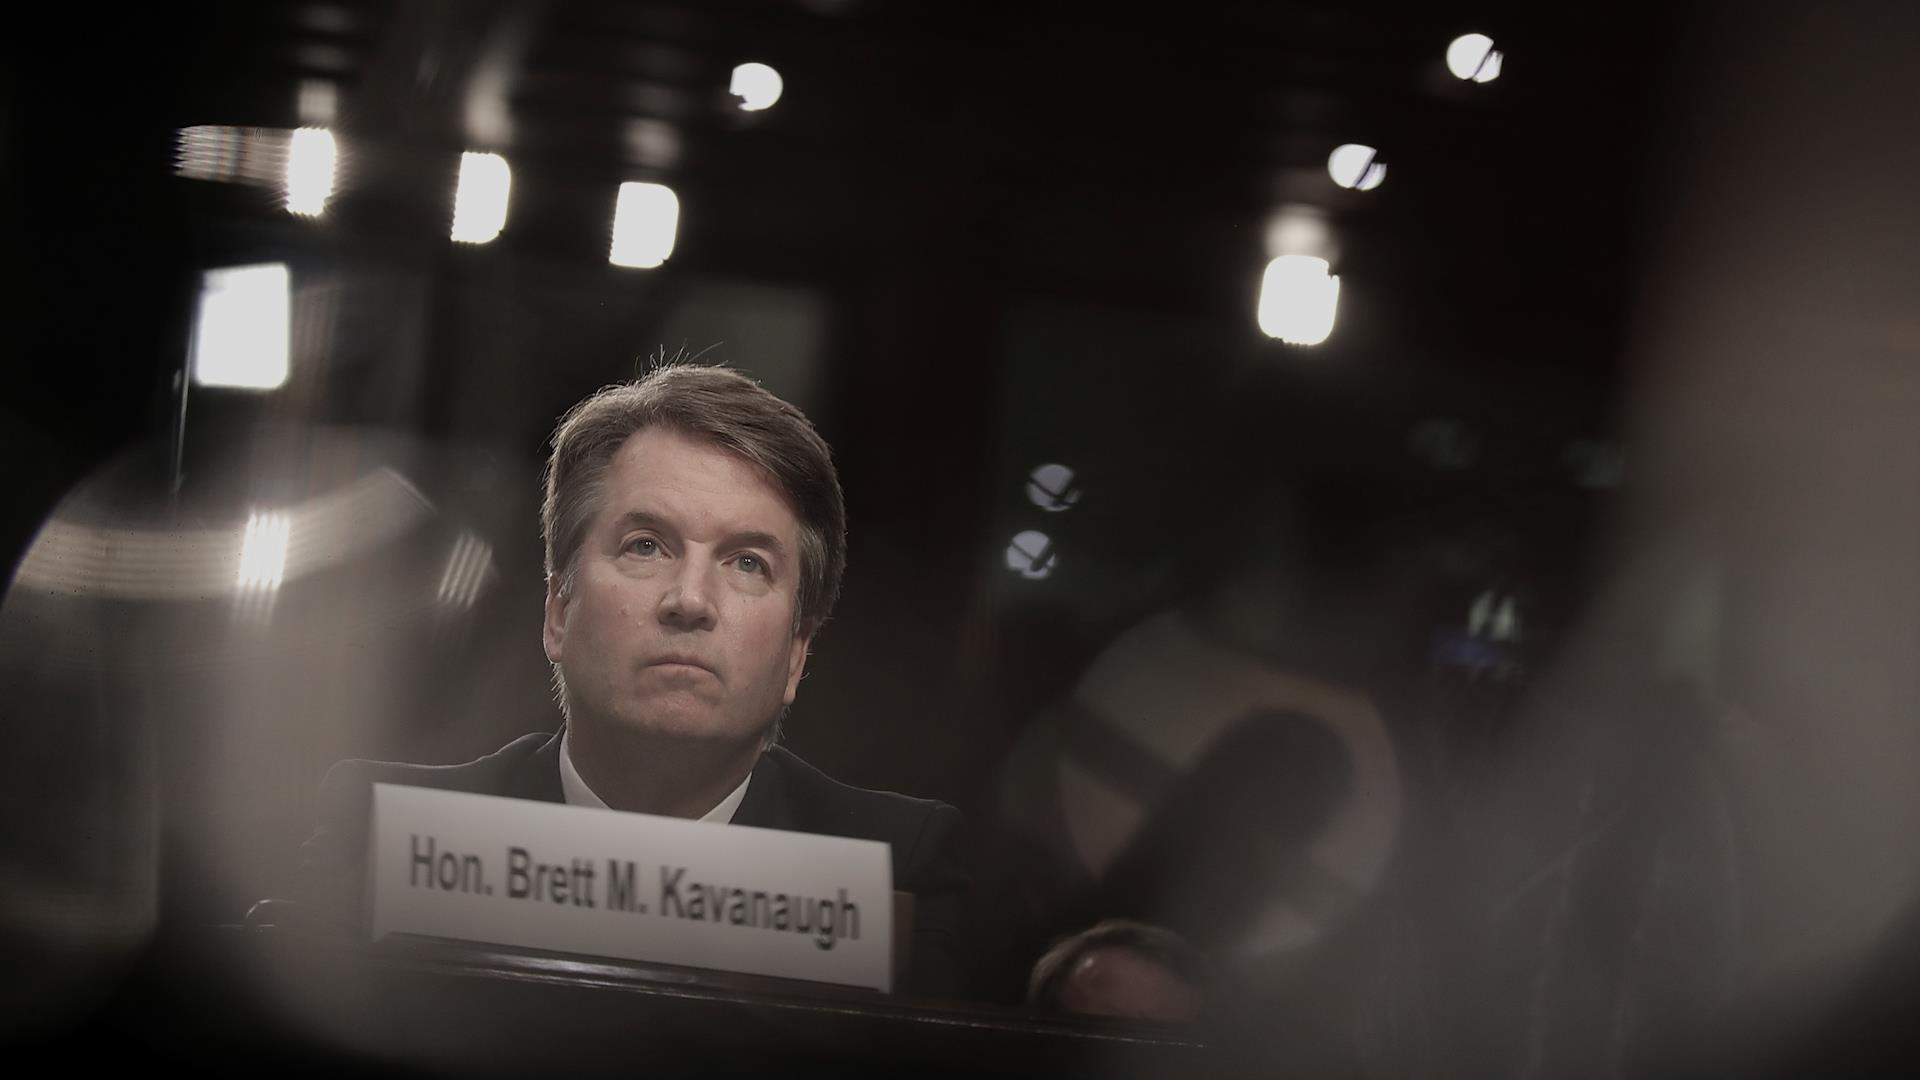 David Brock I knew Brett Kavanaugh during his years as a Republican operative. Don't let him sit on the Supreme Court.